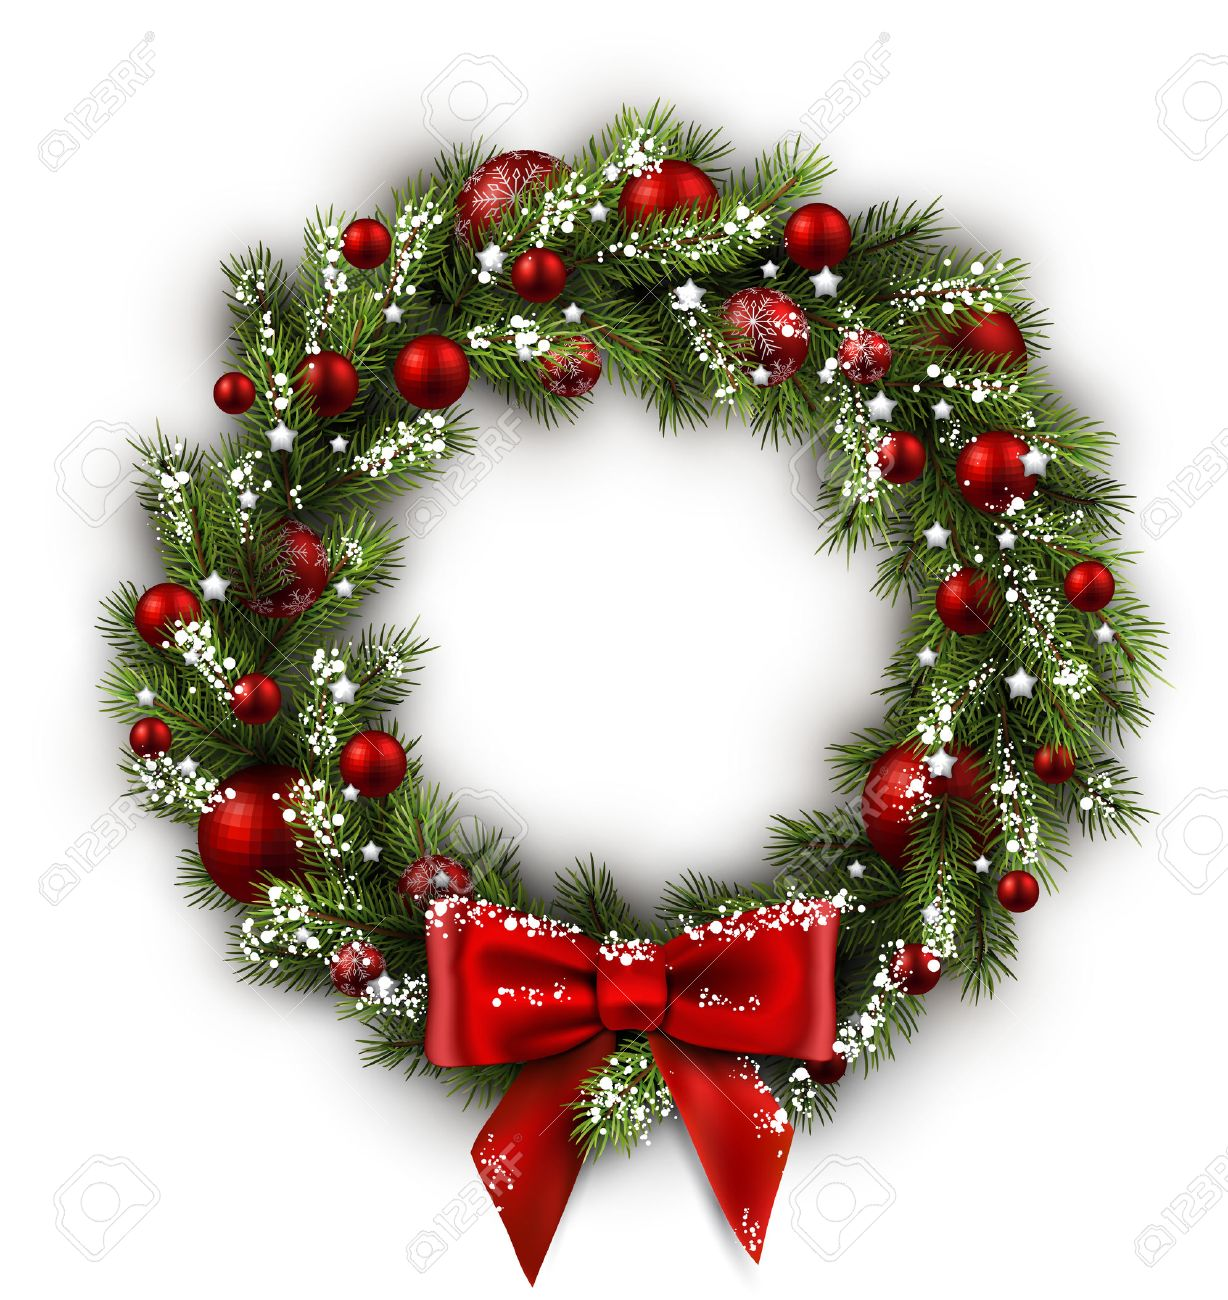 white card with christmas wreath and bow vector illustration